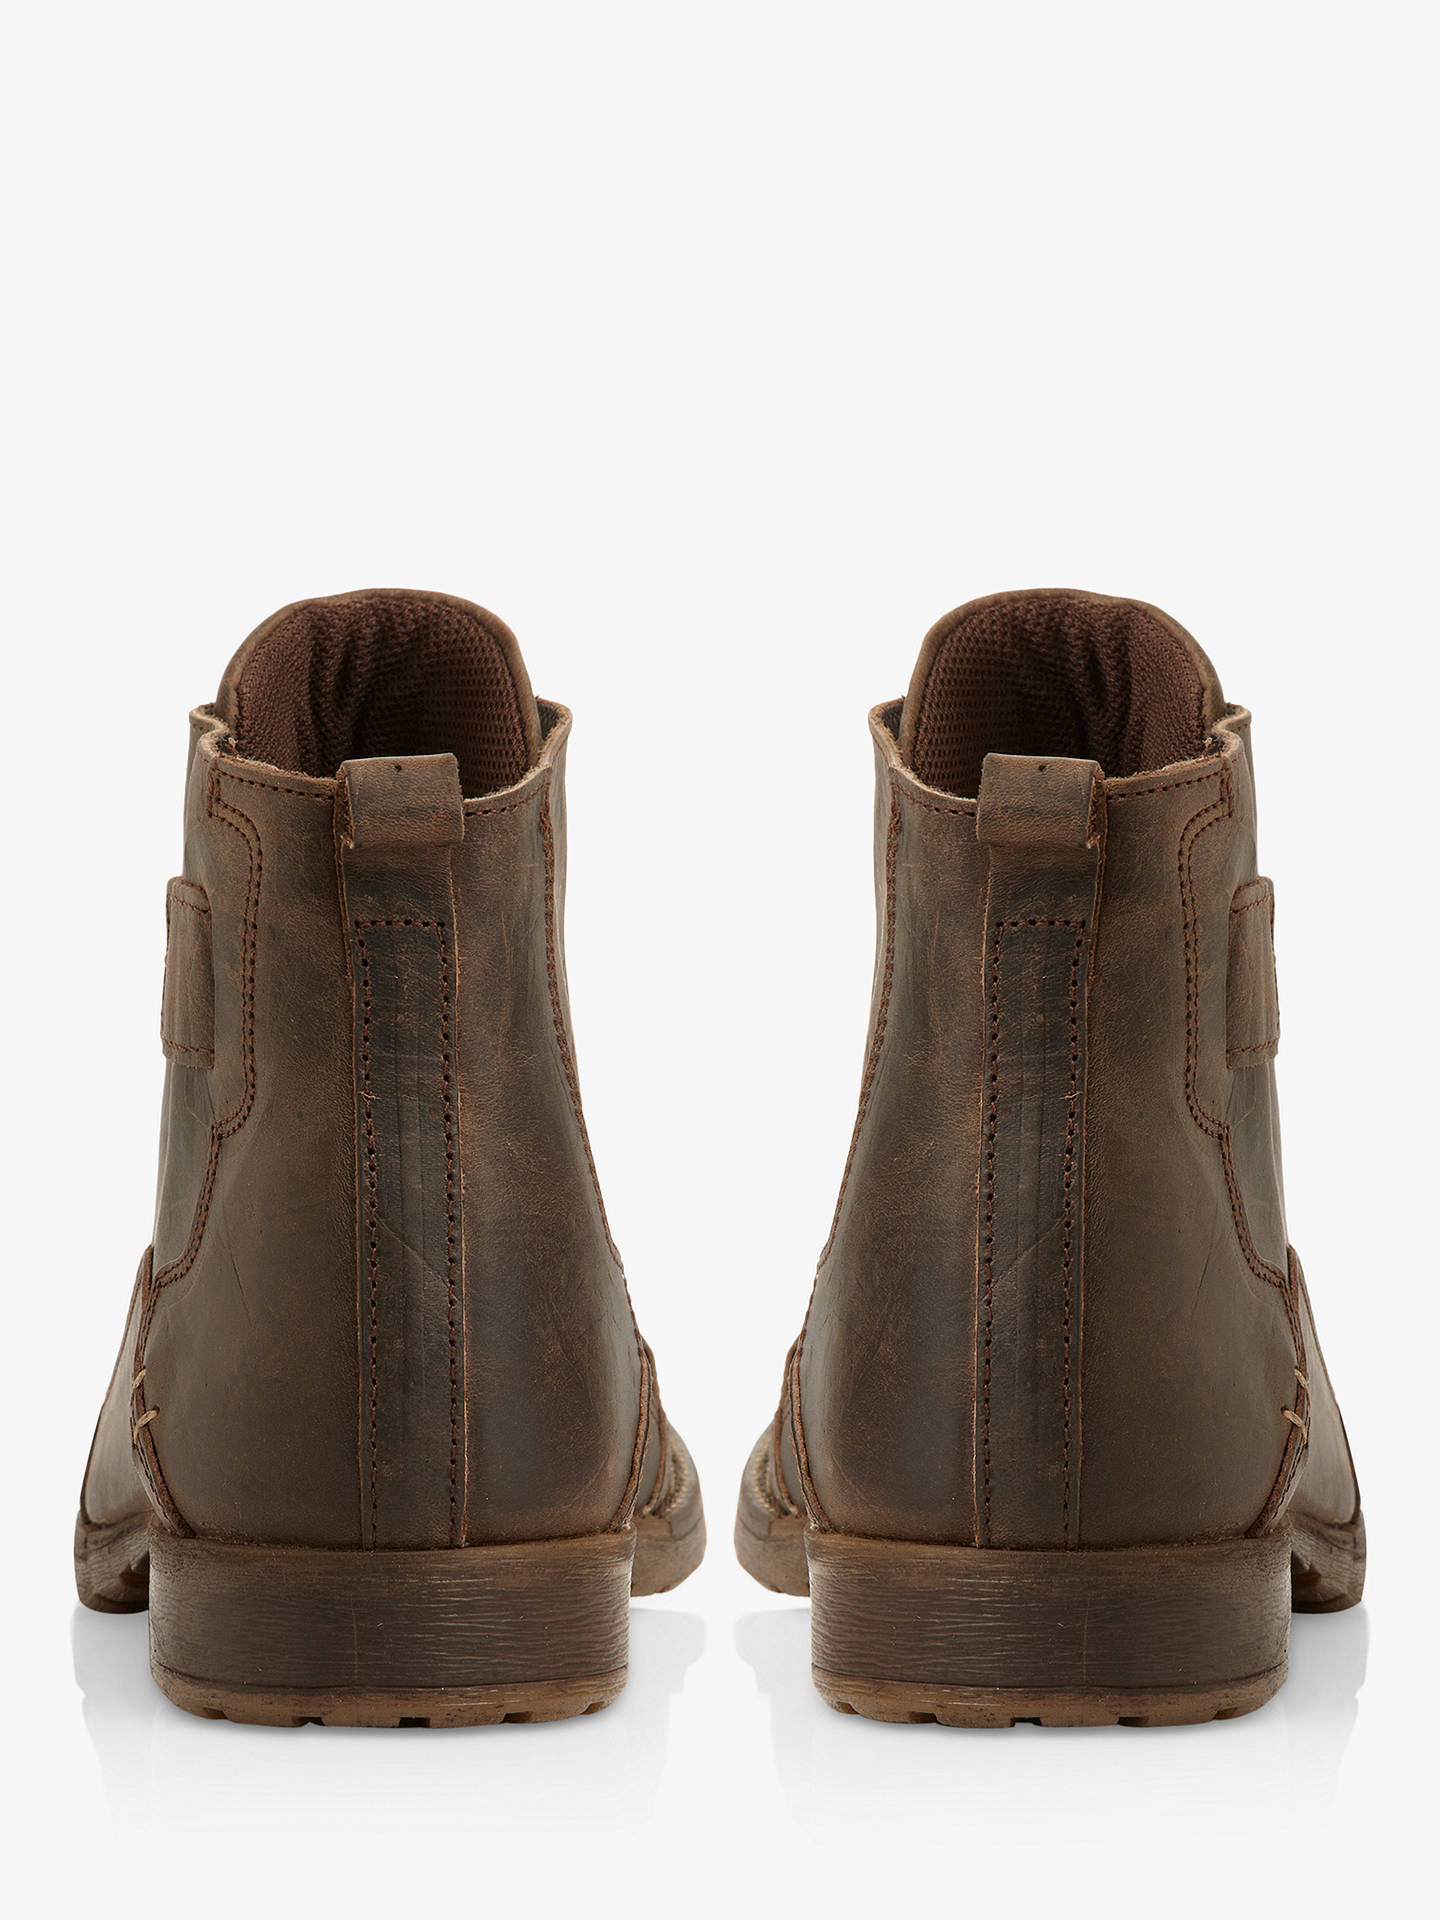 BuyDune Simon Leather Boots, Dark brown, 6 Online at johnlewis.com